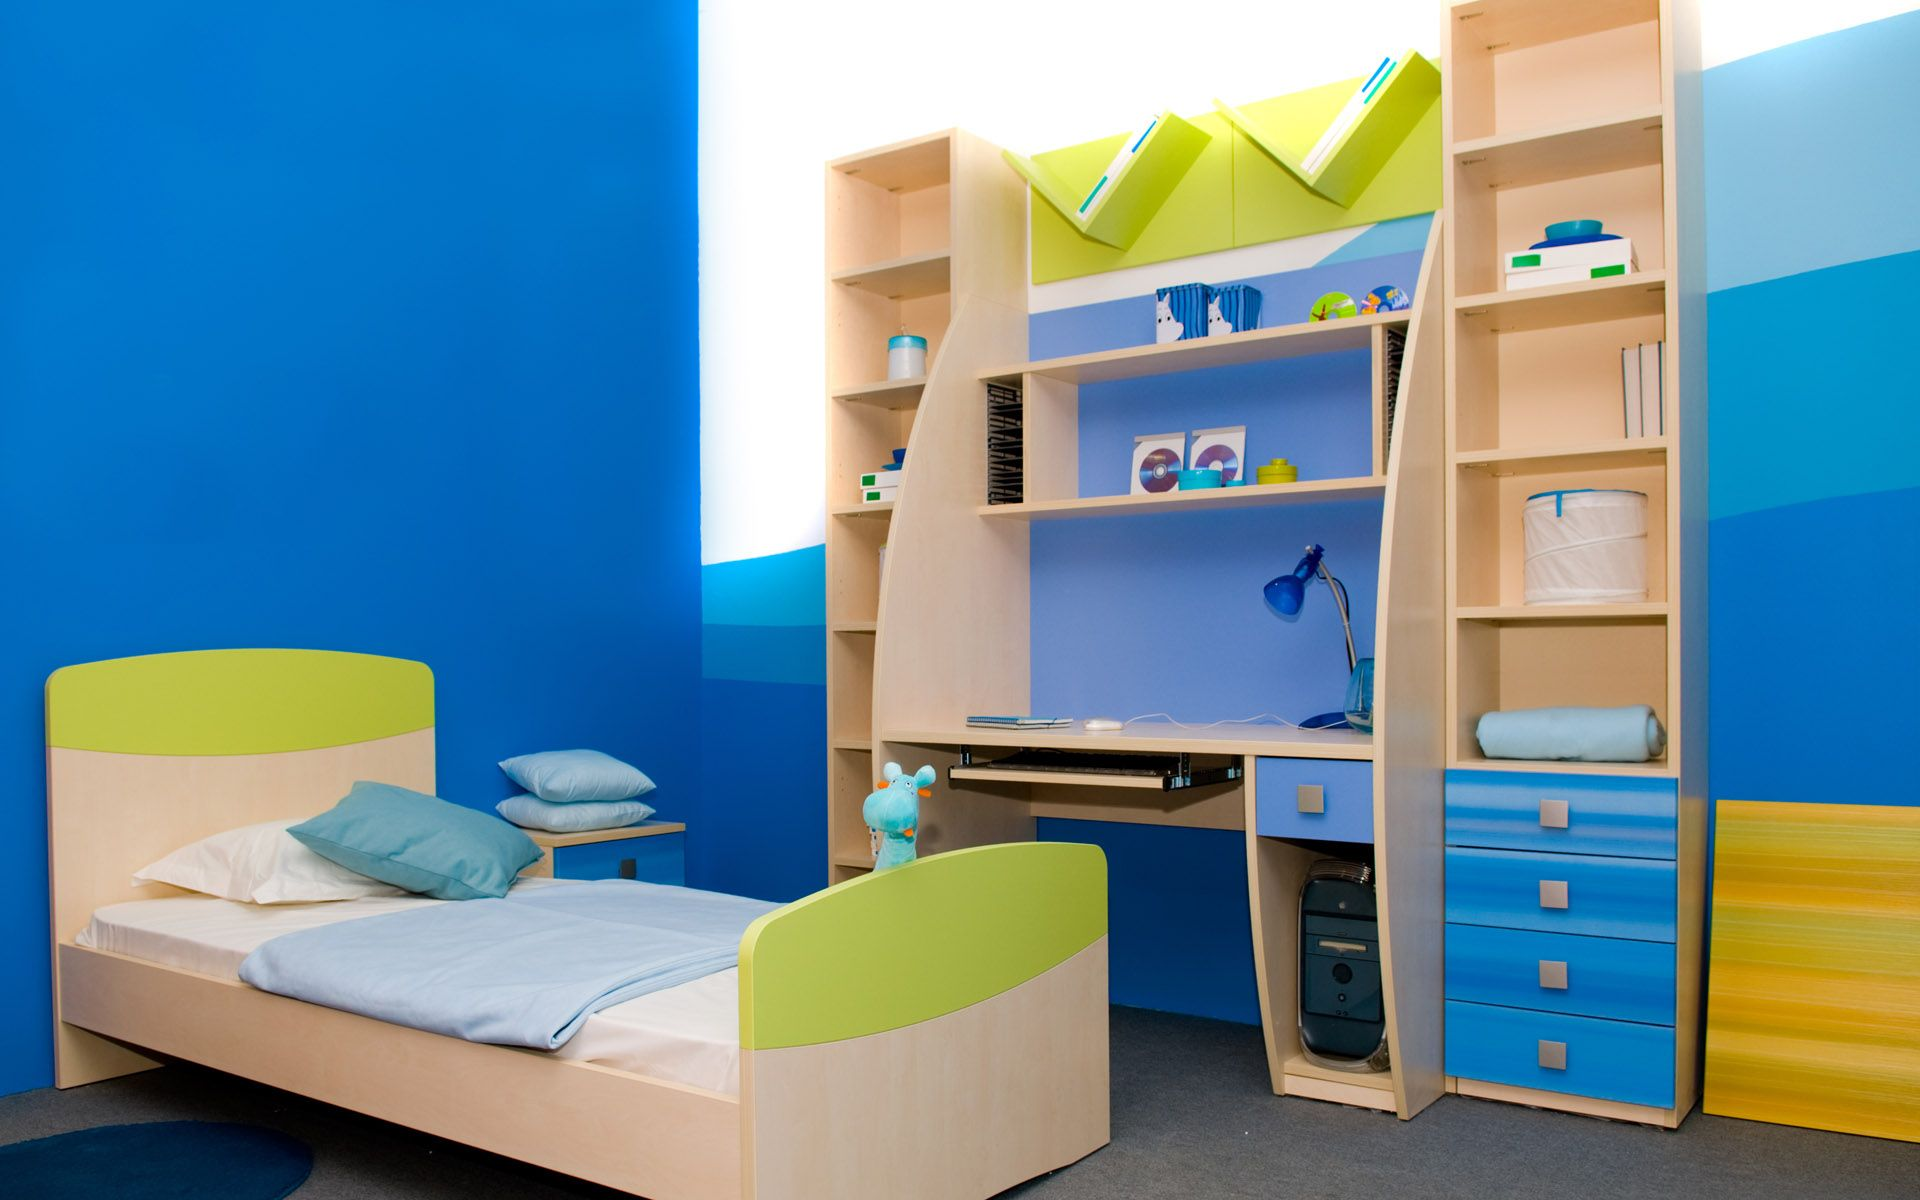 Bedrooms flooring for kids rooms interior